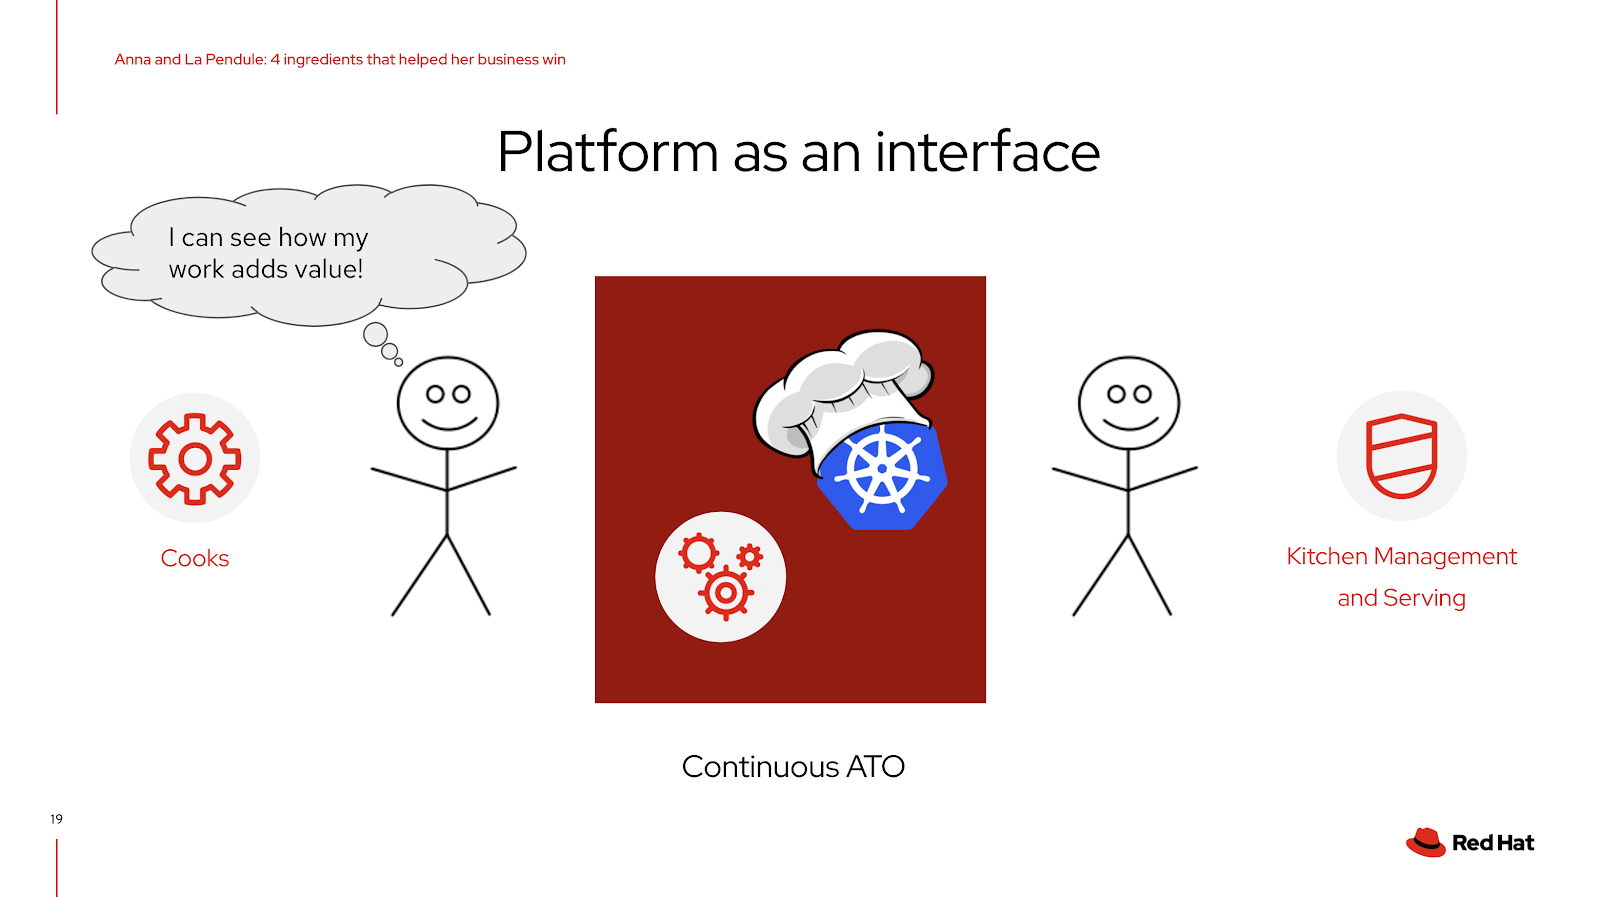 Platform as an Interface offering continuous compliance